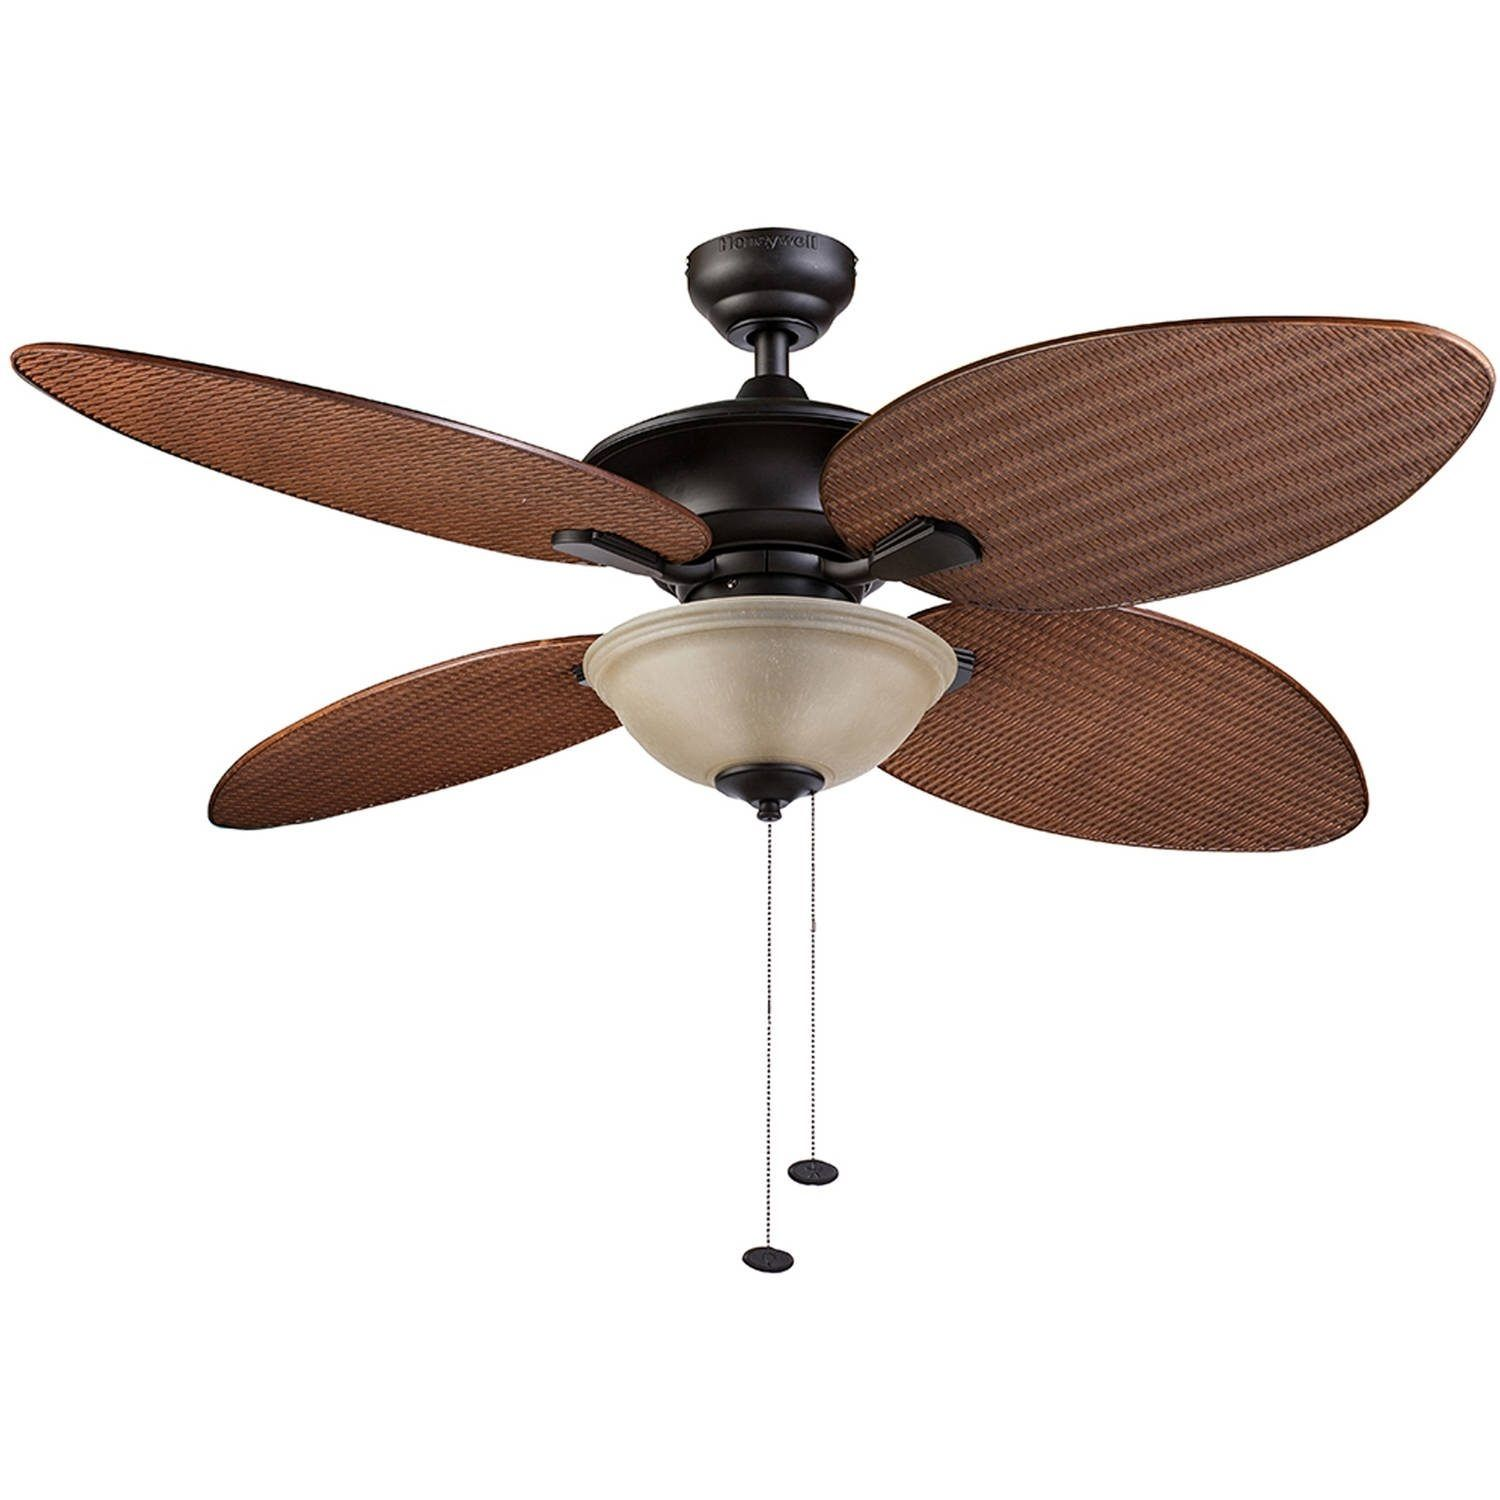 Battery powered outdoor ceiling fans httpladysrofo battery powered outdoor ceiling fans aloadofball Gallery